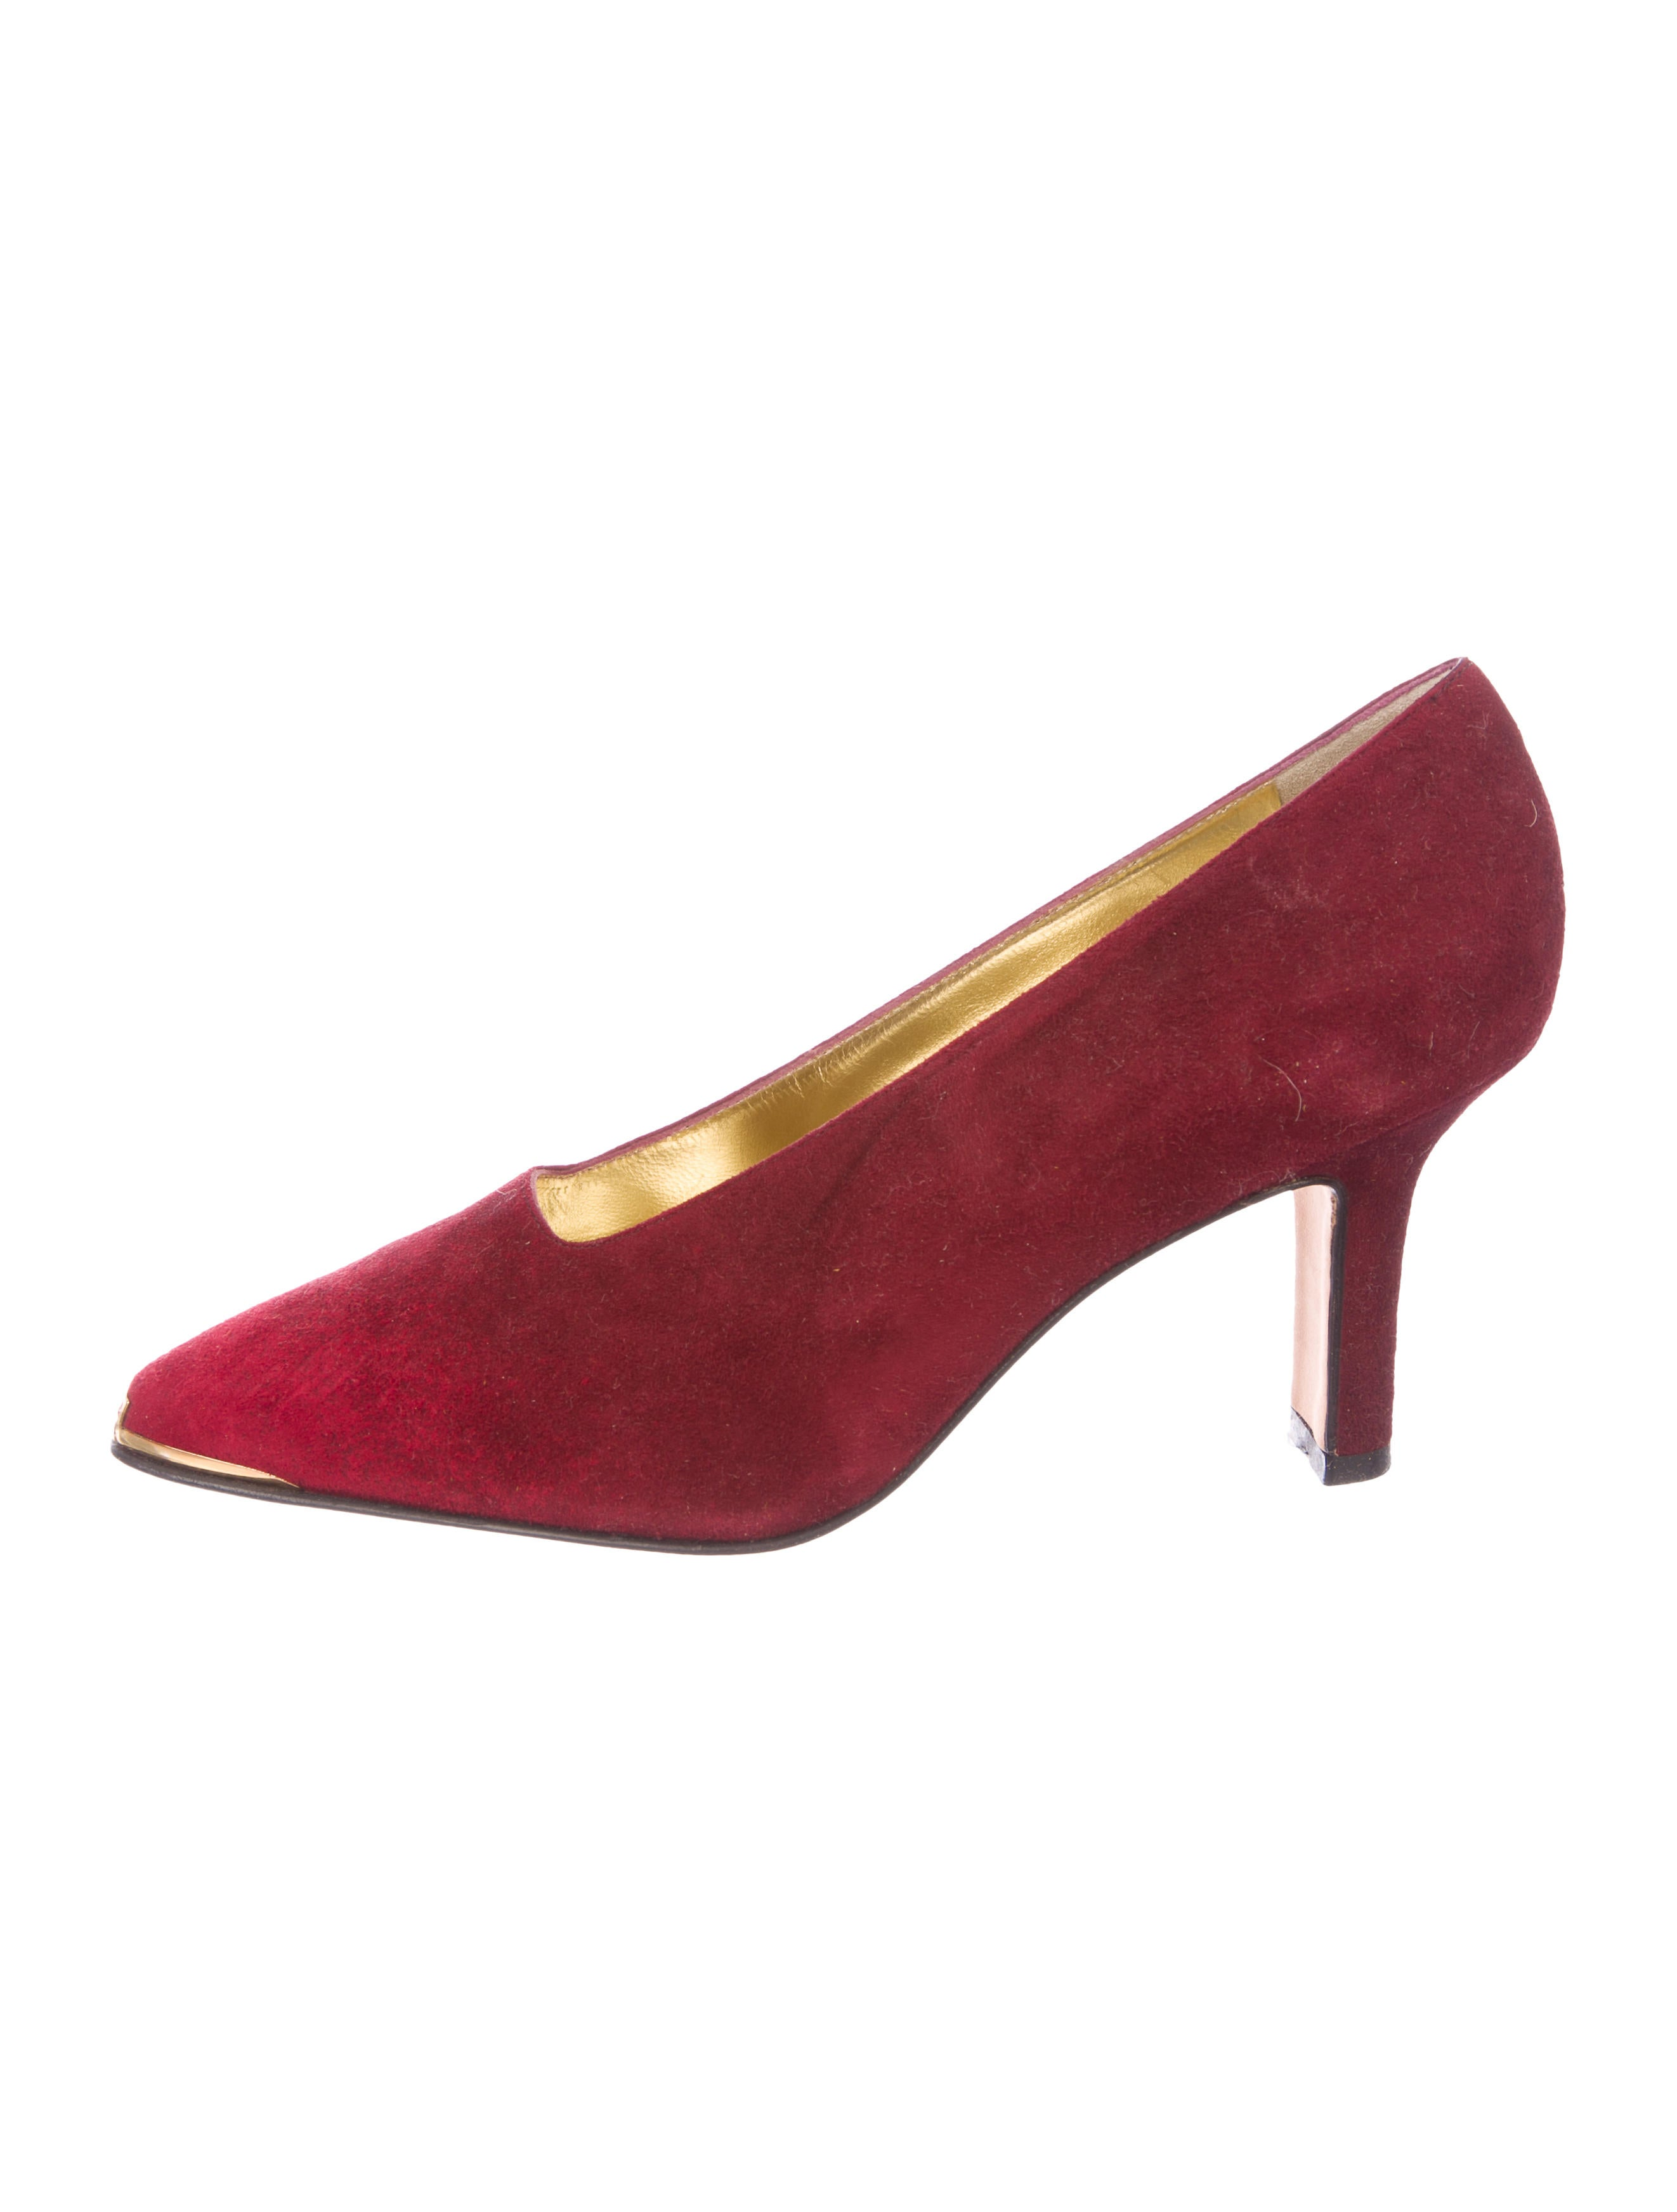 Escada Suede Pointed-Toe Pumps from china low shipping cheap online find great online newest online sneakernews ROvLnU